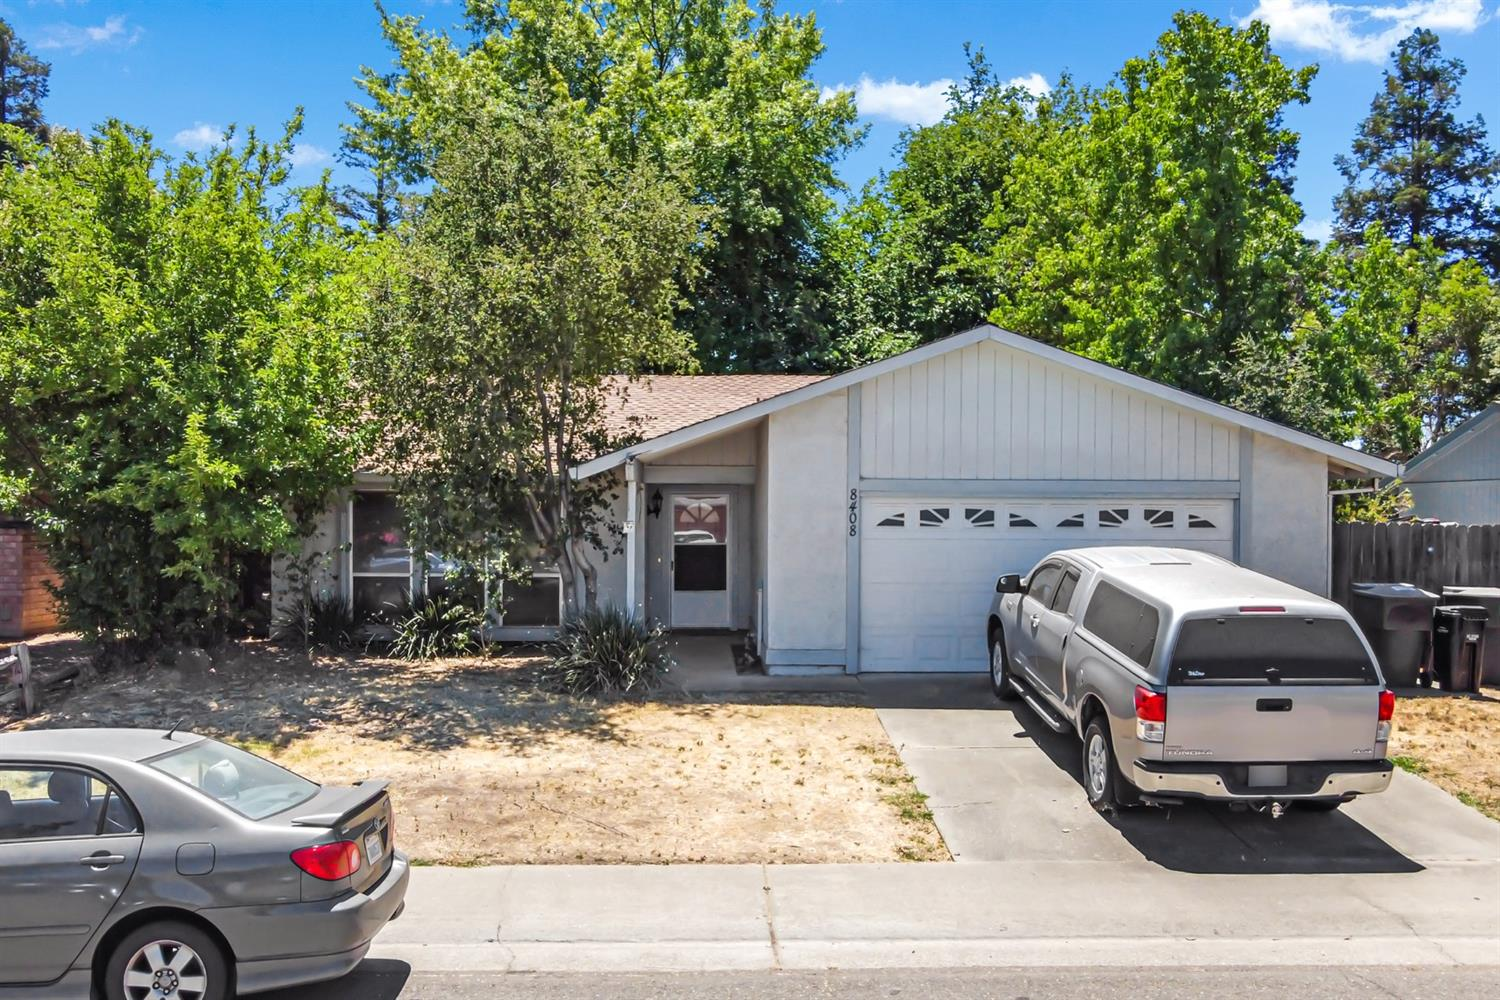 Great opportunity to make this home yours. With a little updating this will be a charmer. Location is walking distance to the neighborhood park.